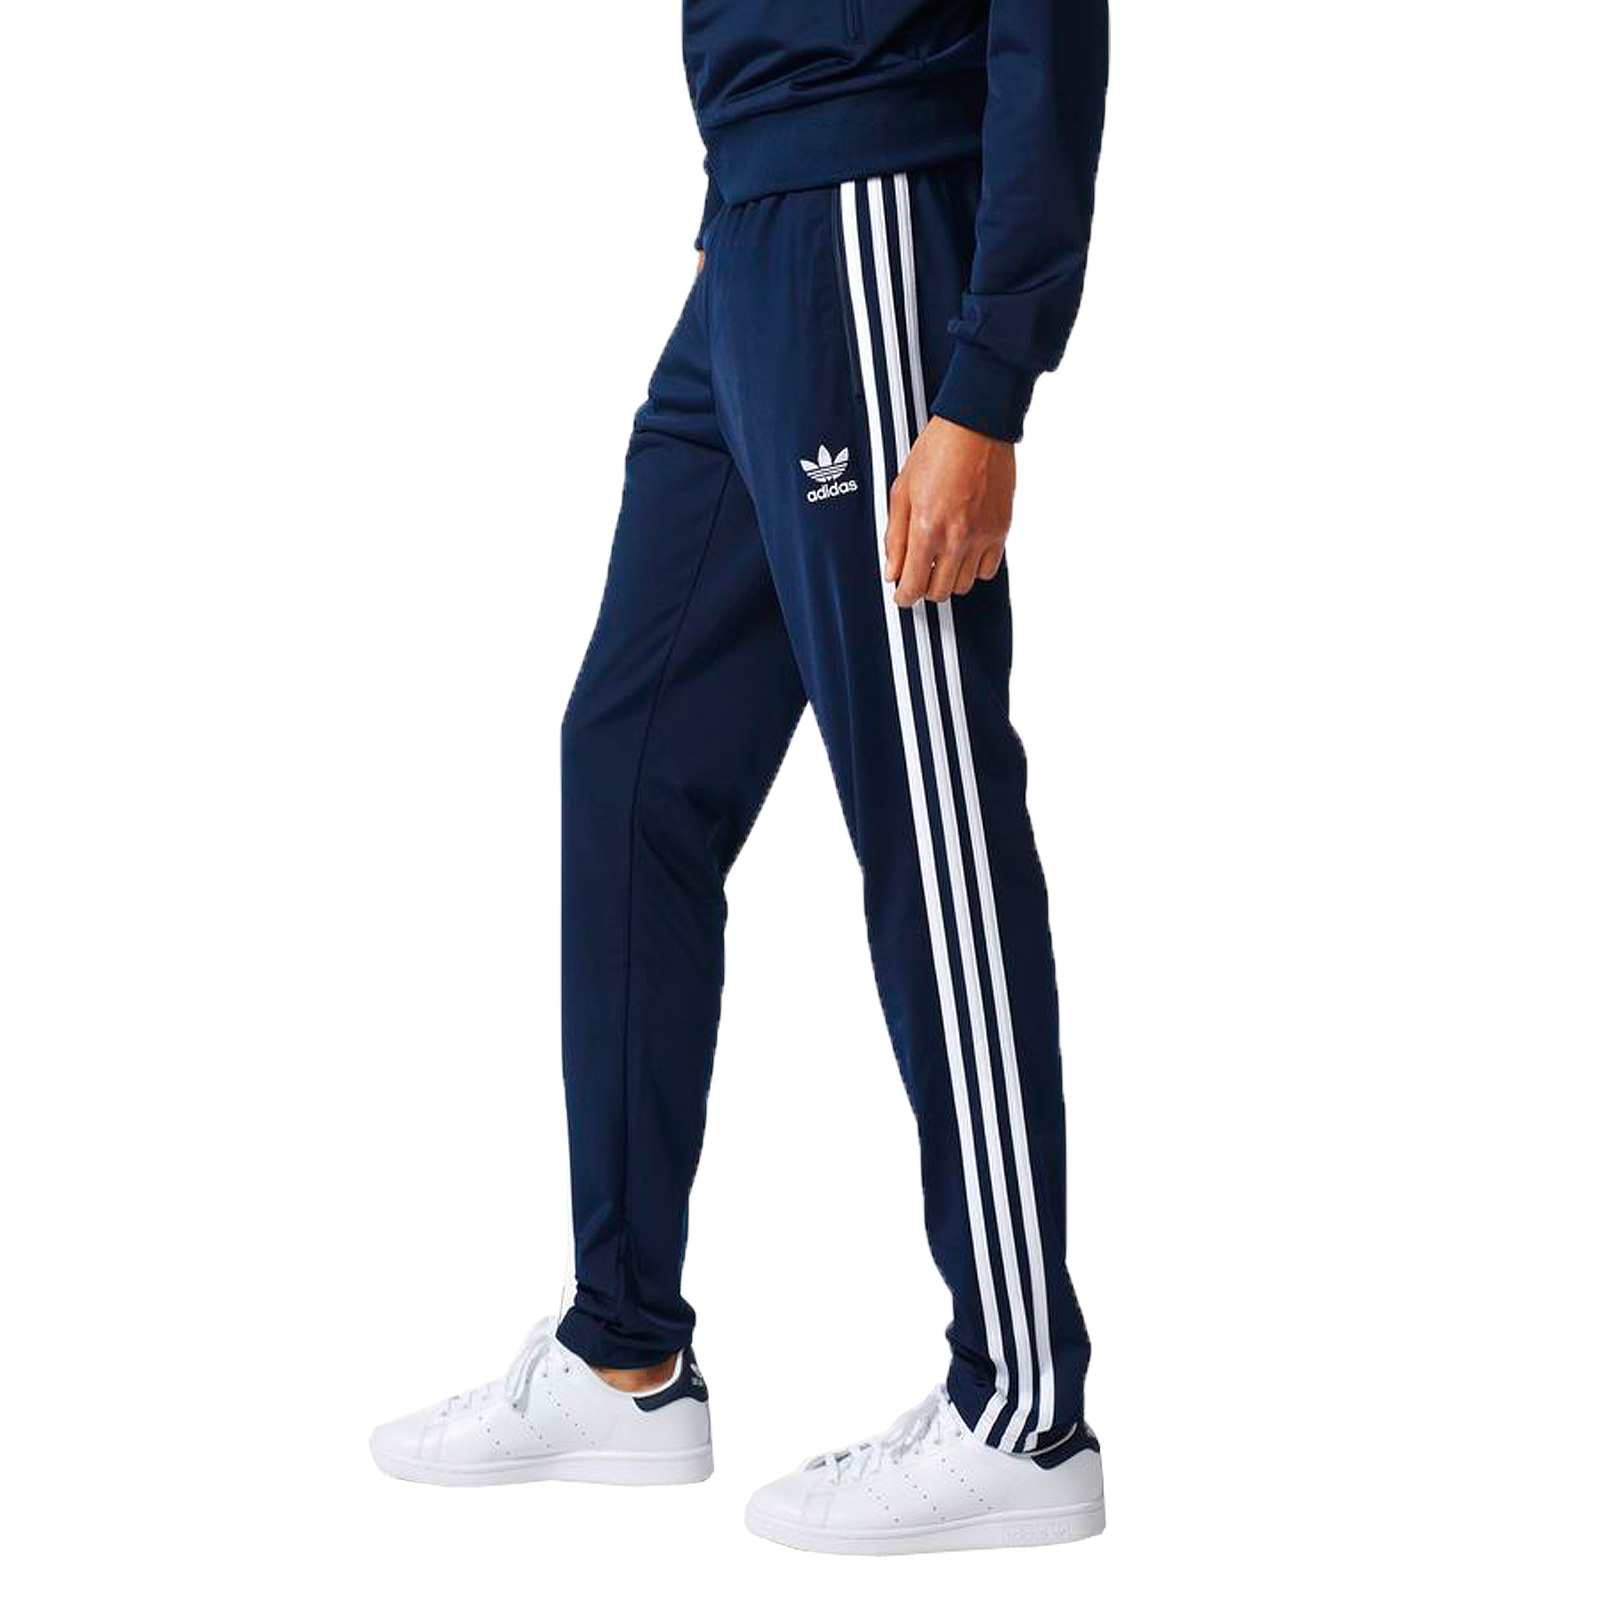 adidas Herren Open Hem Skinny Sporthose Superstar Trainings Hose enges Bein Navy